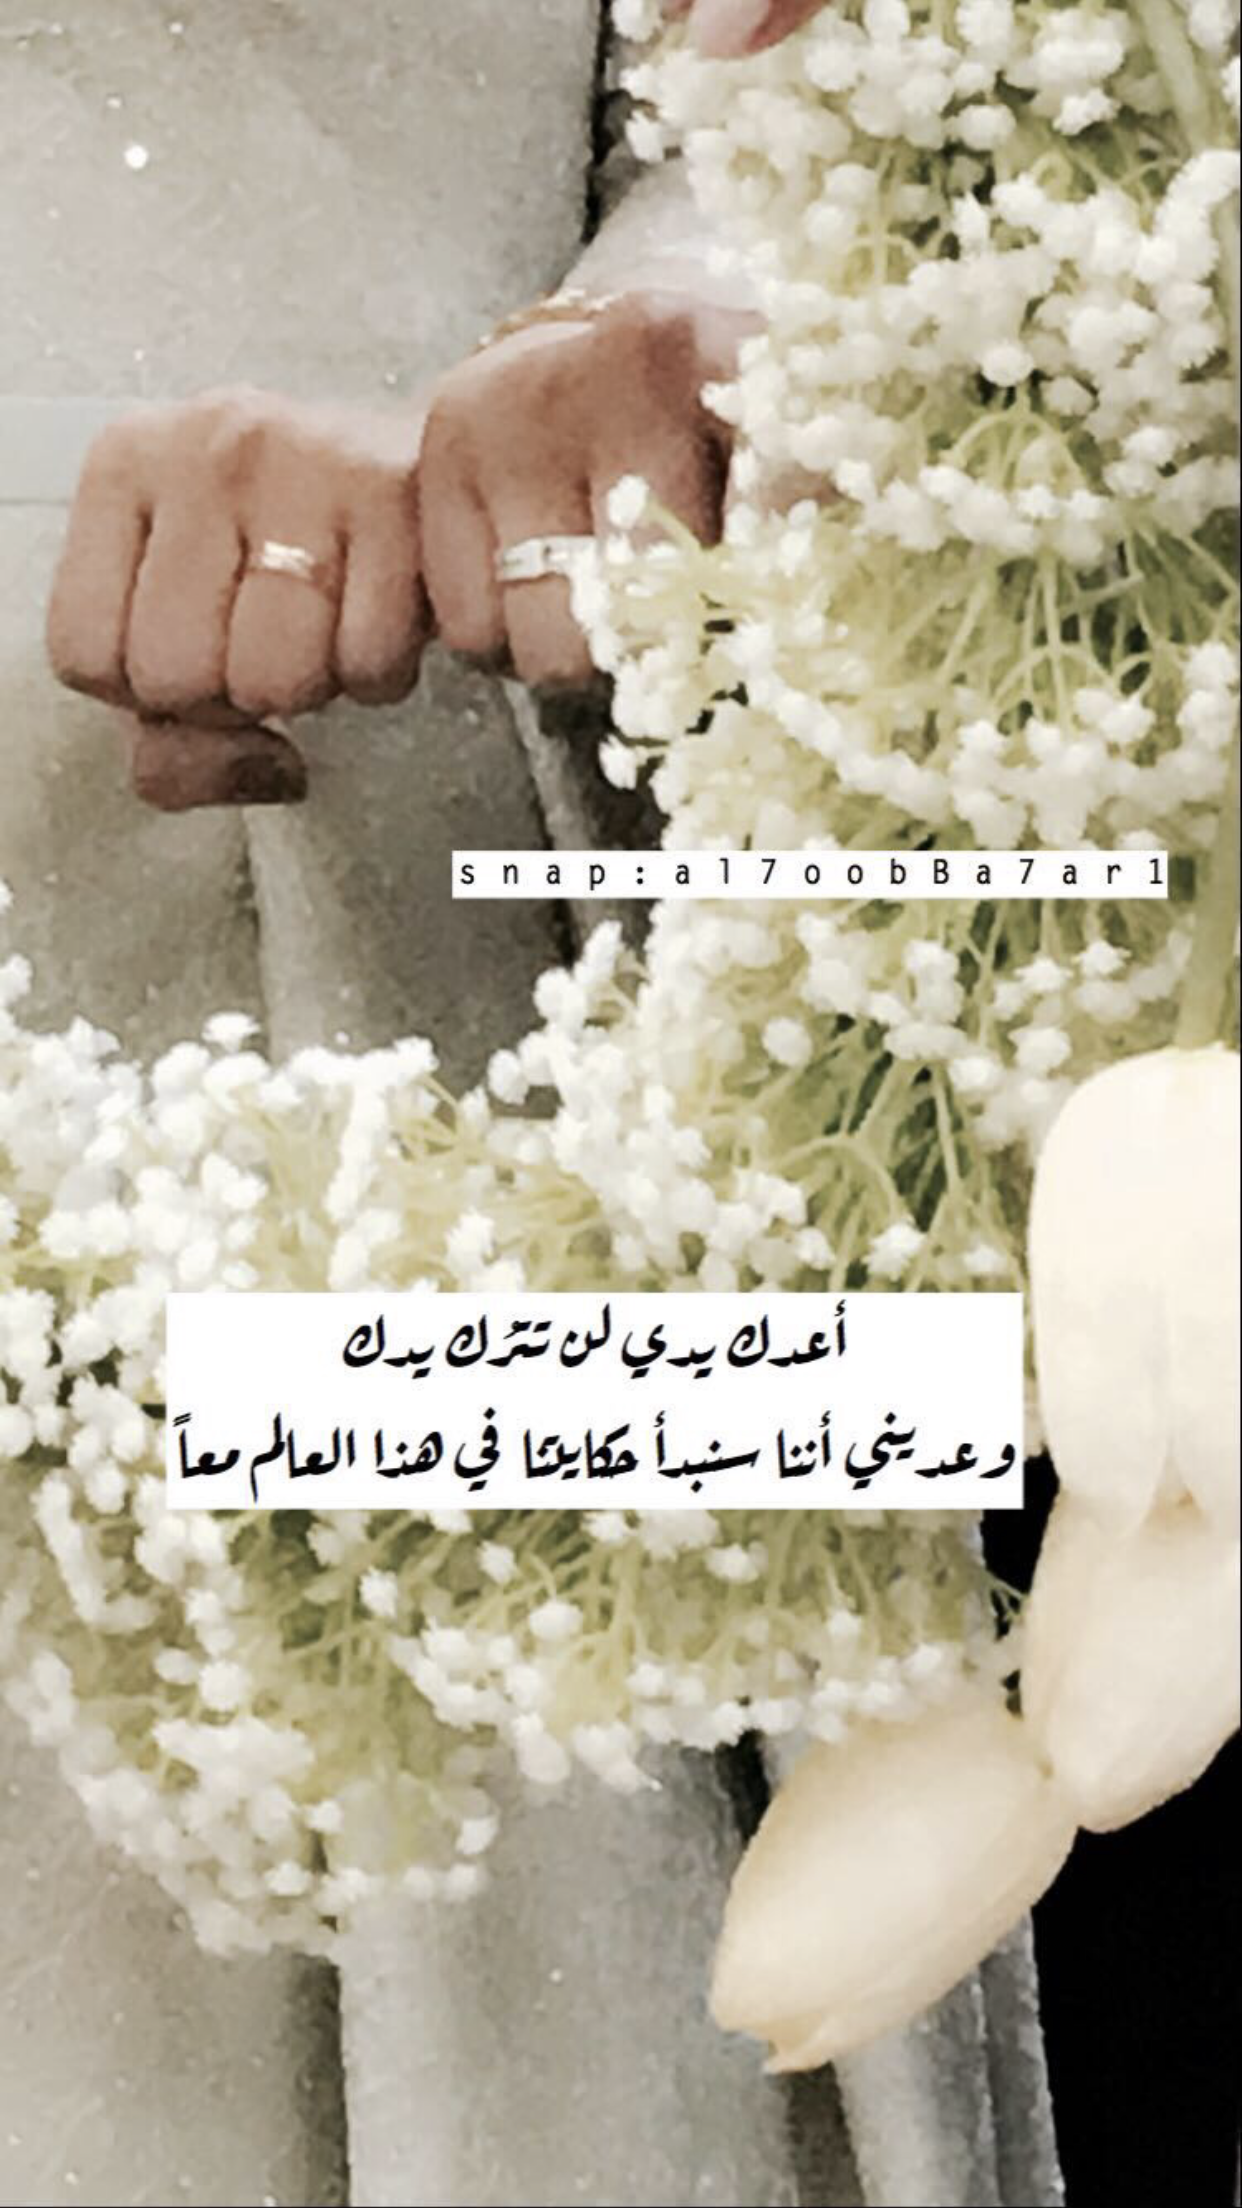 Snap Al7oobba7ar1 Iphone Wallpaper Quotes Love Love Smile Quotes Cute Love Images